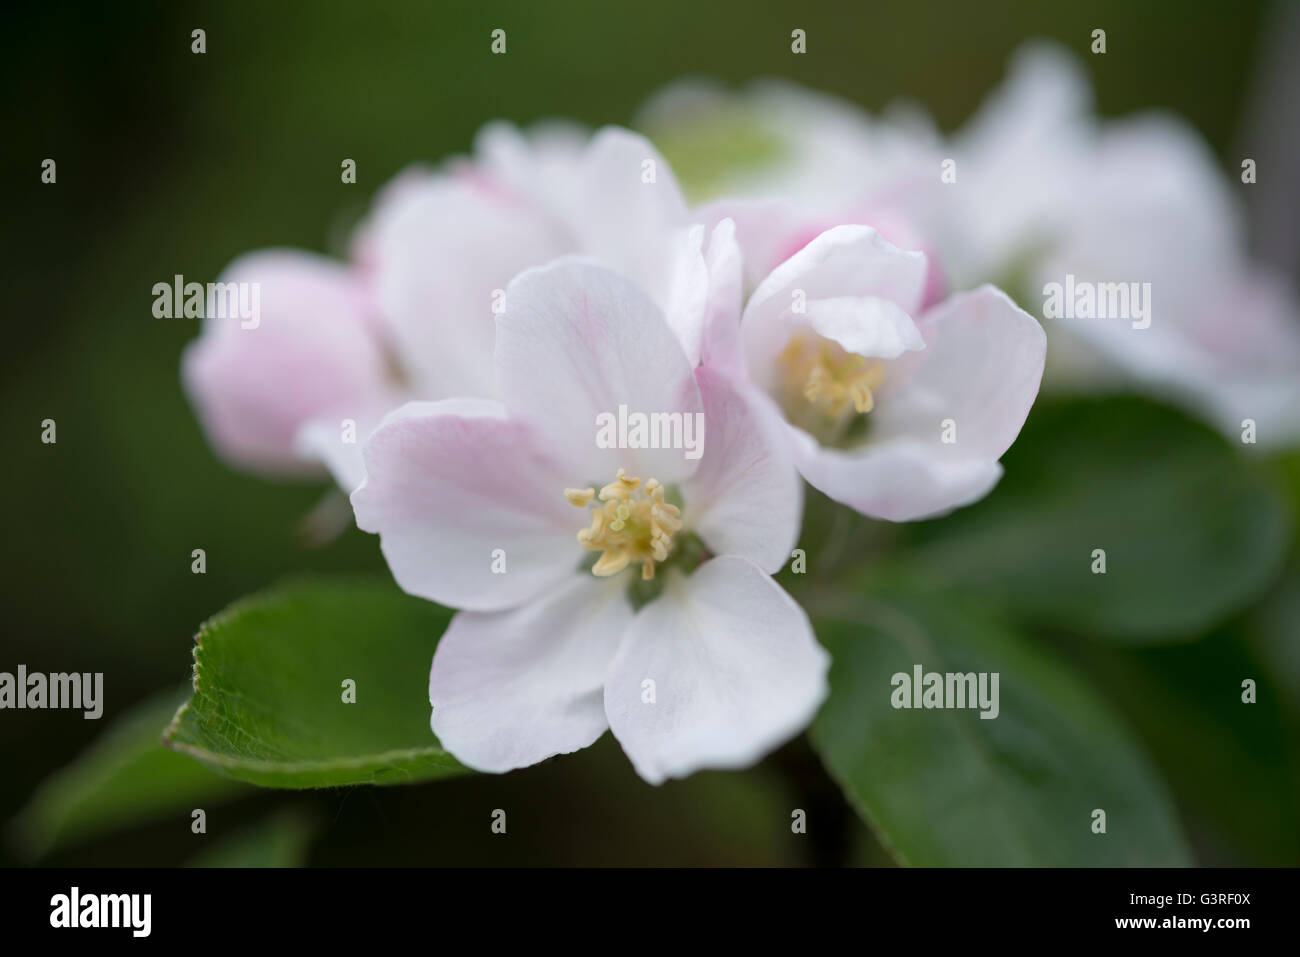 Close up of spring Apple blossom. Flowers of a cultivated variety. - Stock Image